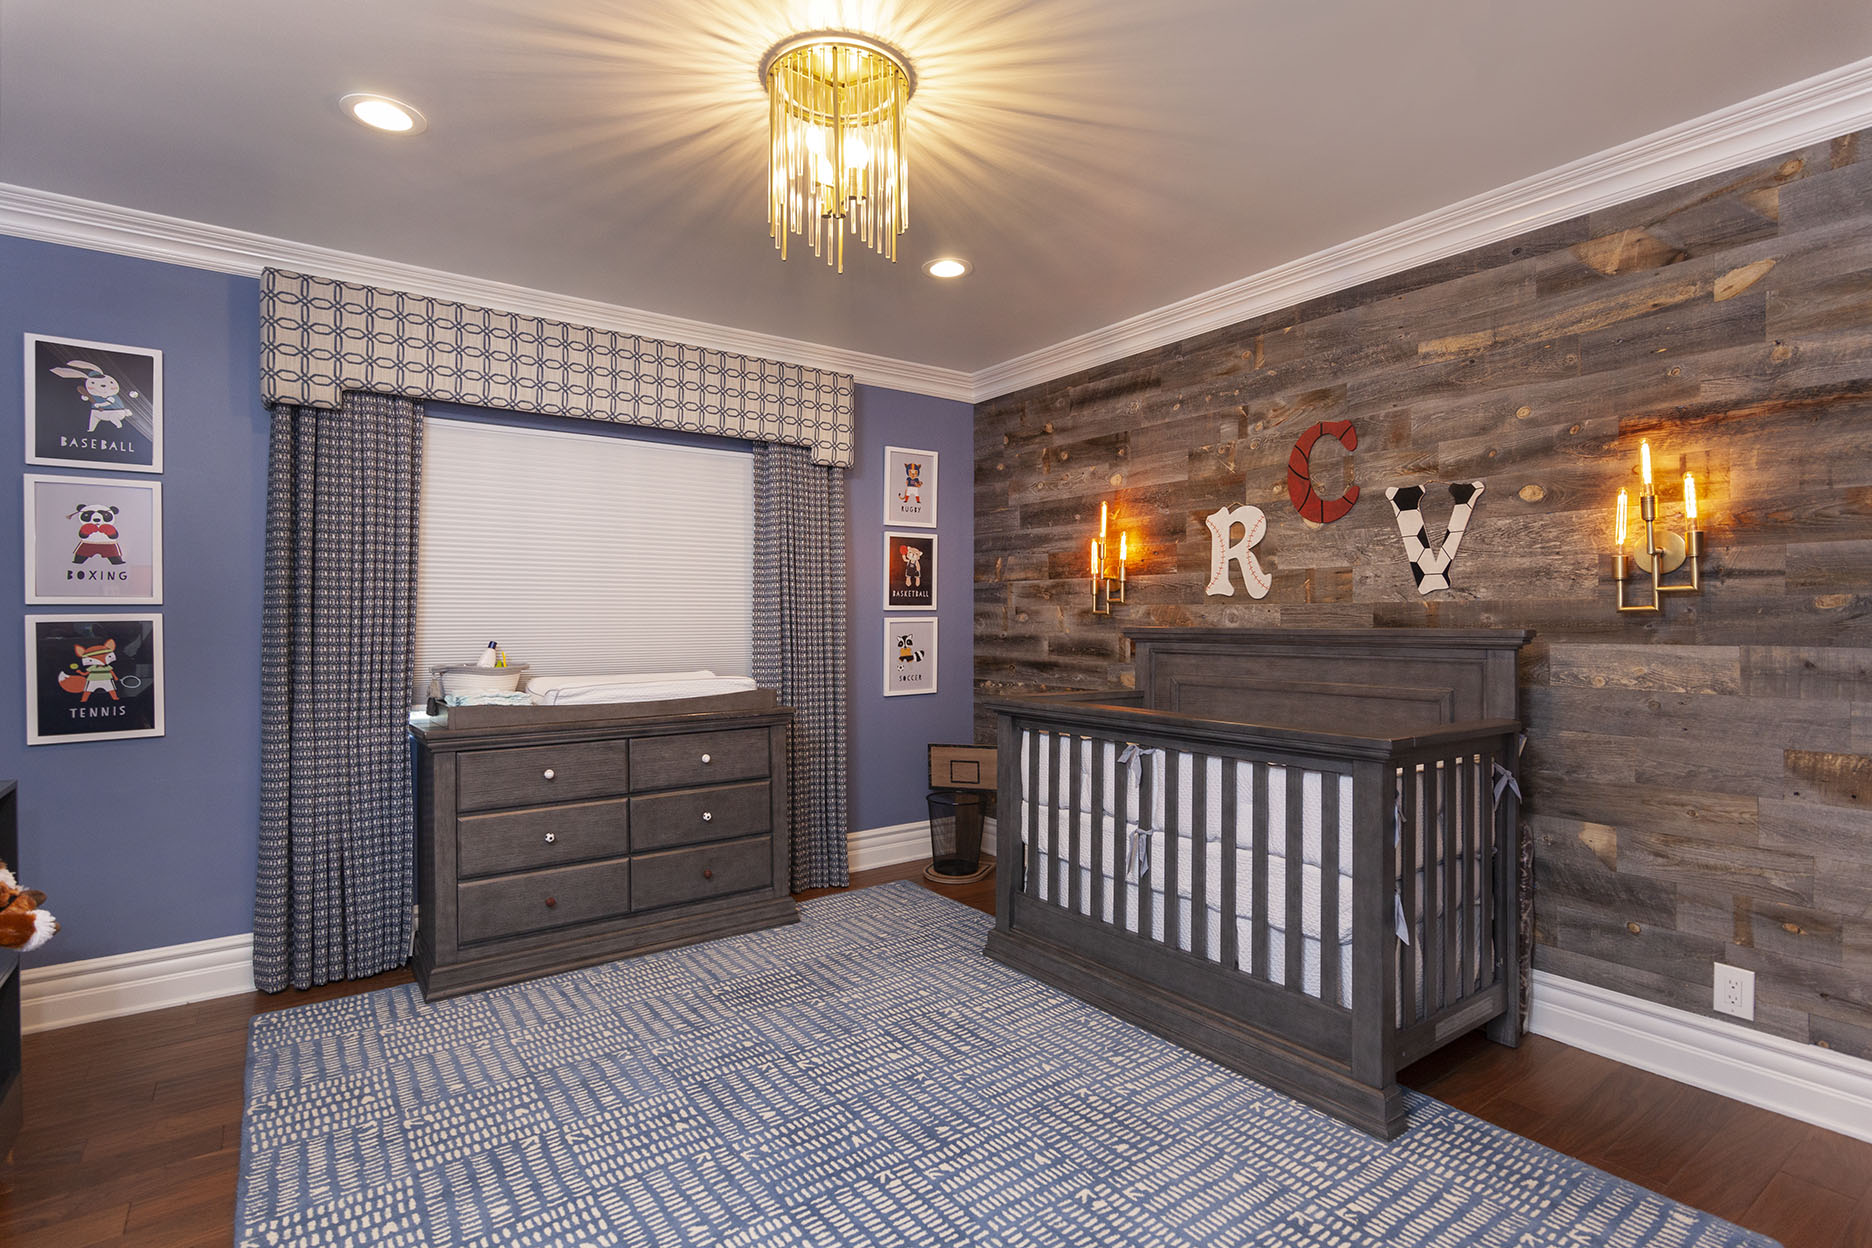 """Nursery Interior Design: """"Let The Room Grow With The Baby."""""""